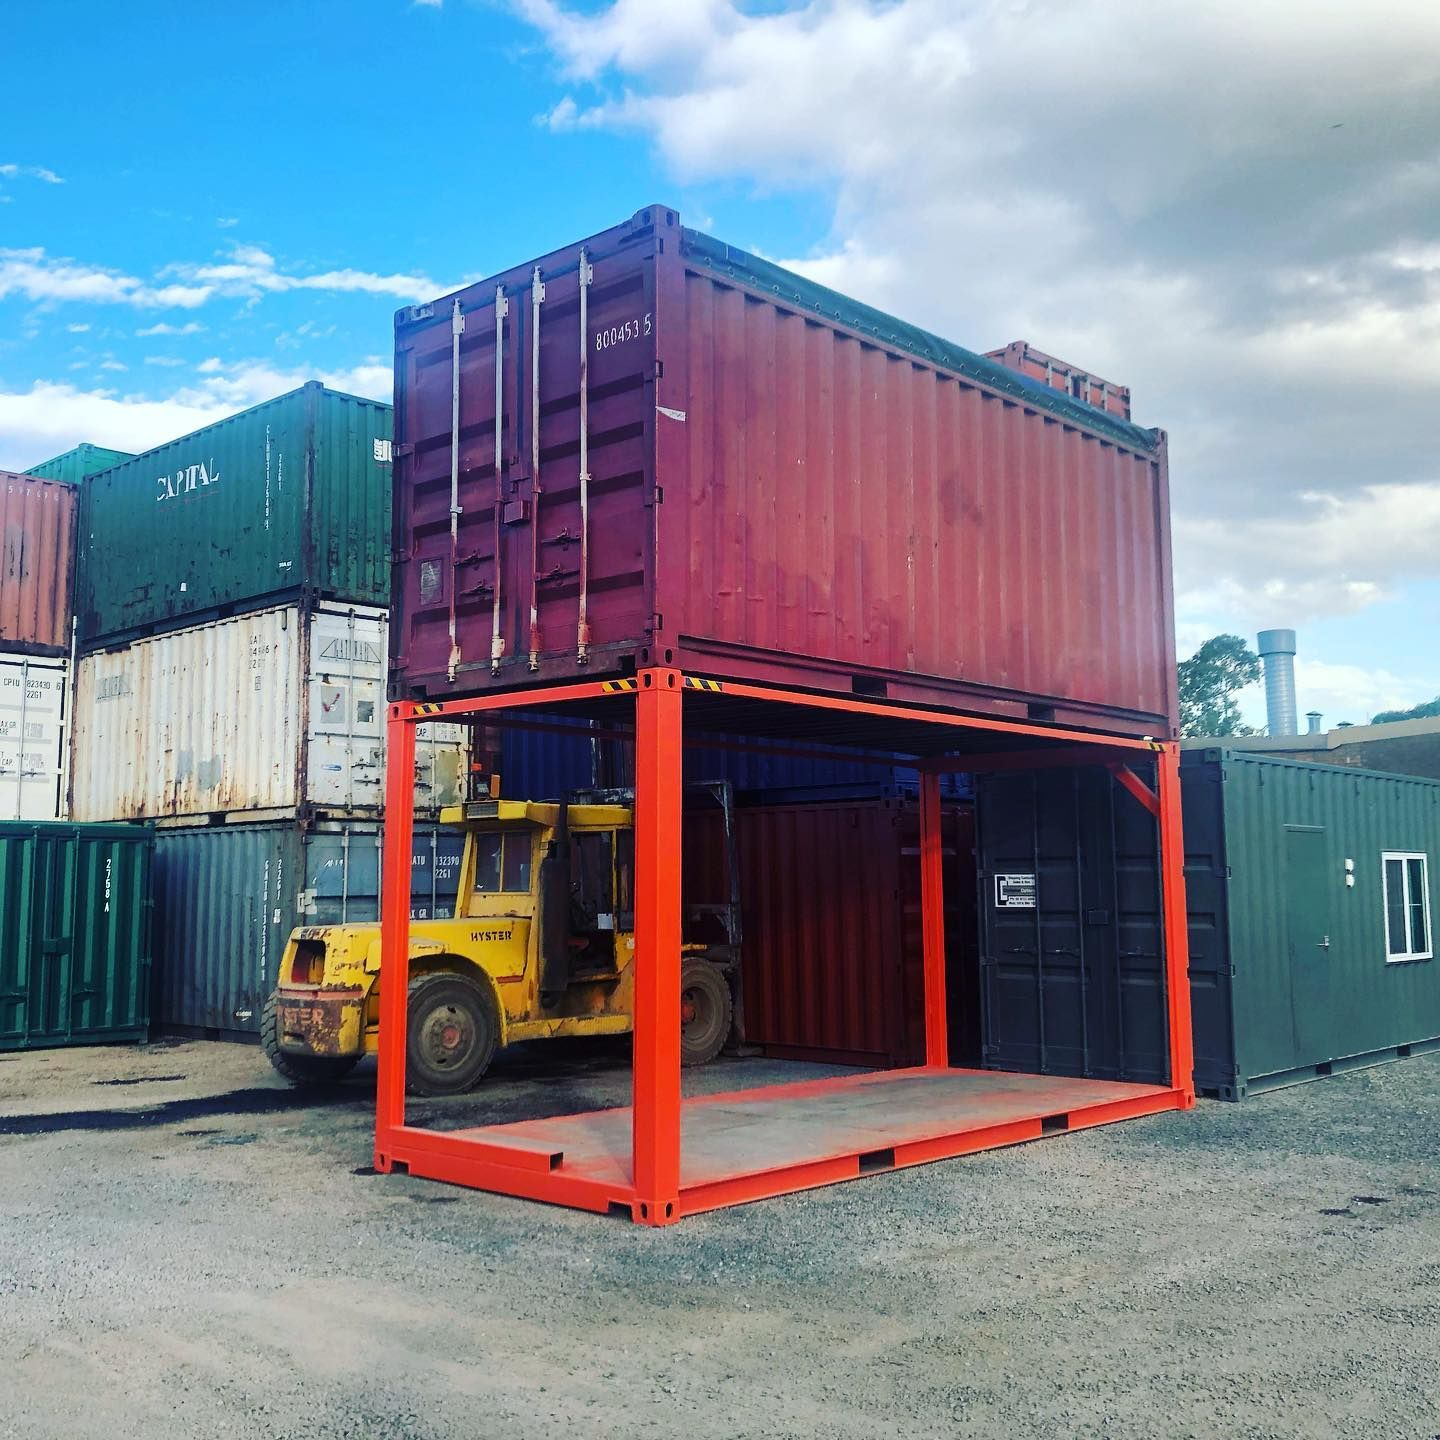 An Open Top On Top Of Another Open Top Although I Suppose You Could Call It An Open Everything Container Shippingcont In 2020 Shipping Container Options Open Top